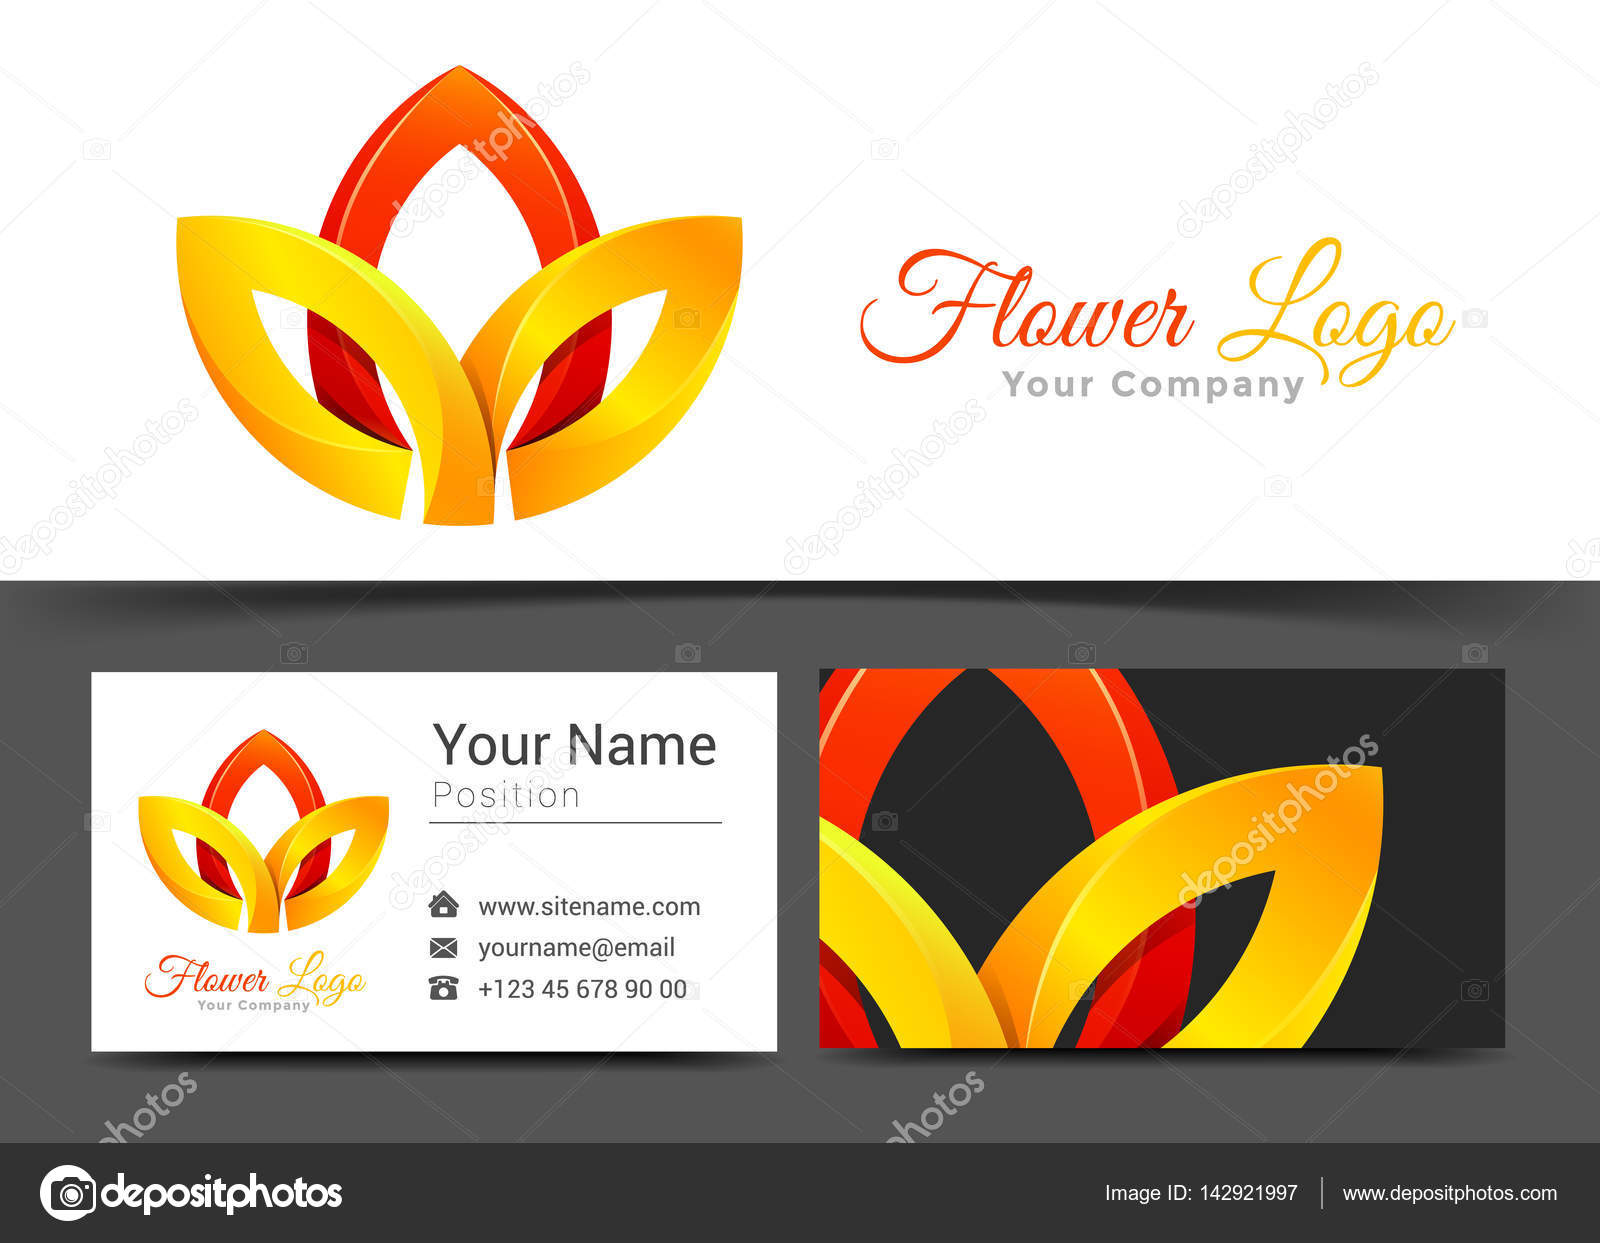 Lotus Flower Red and Yellow Yoga Corporate Logo and Business Card ...